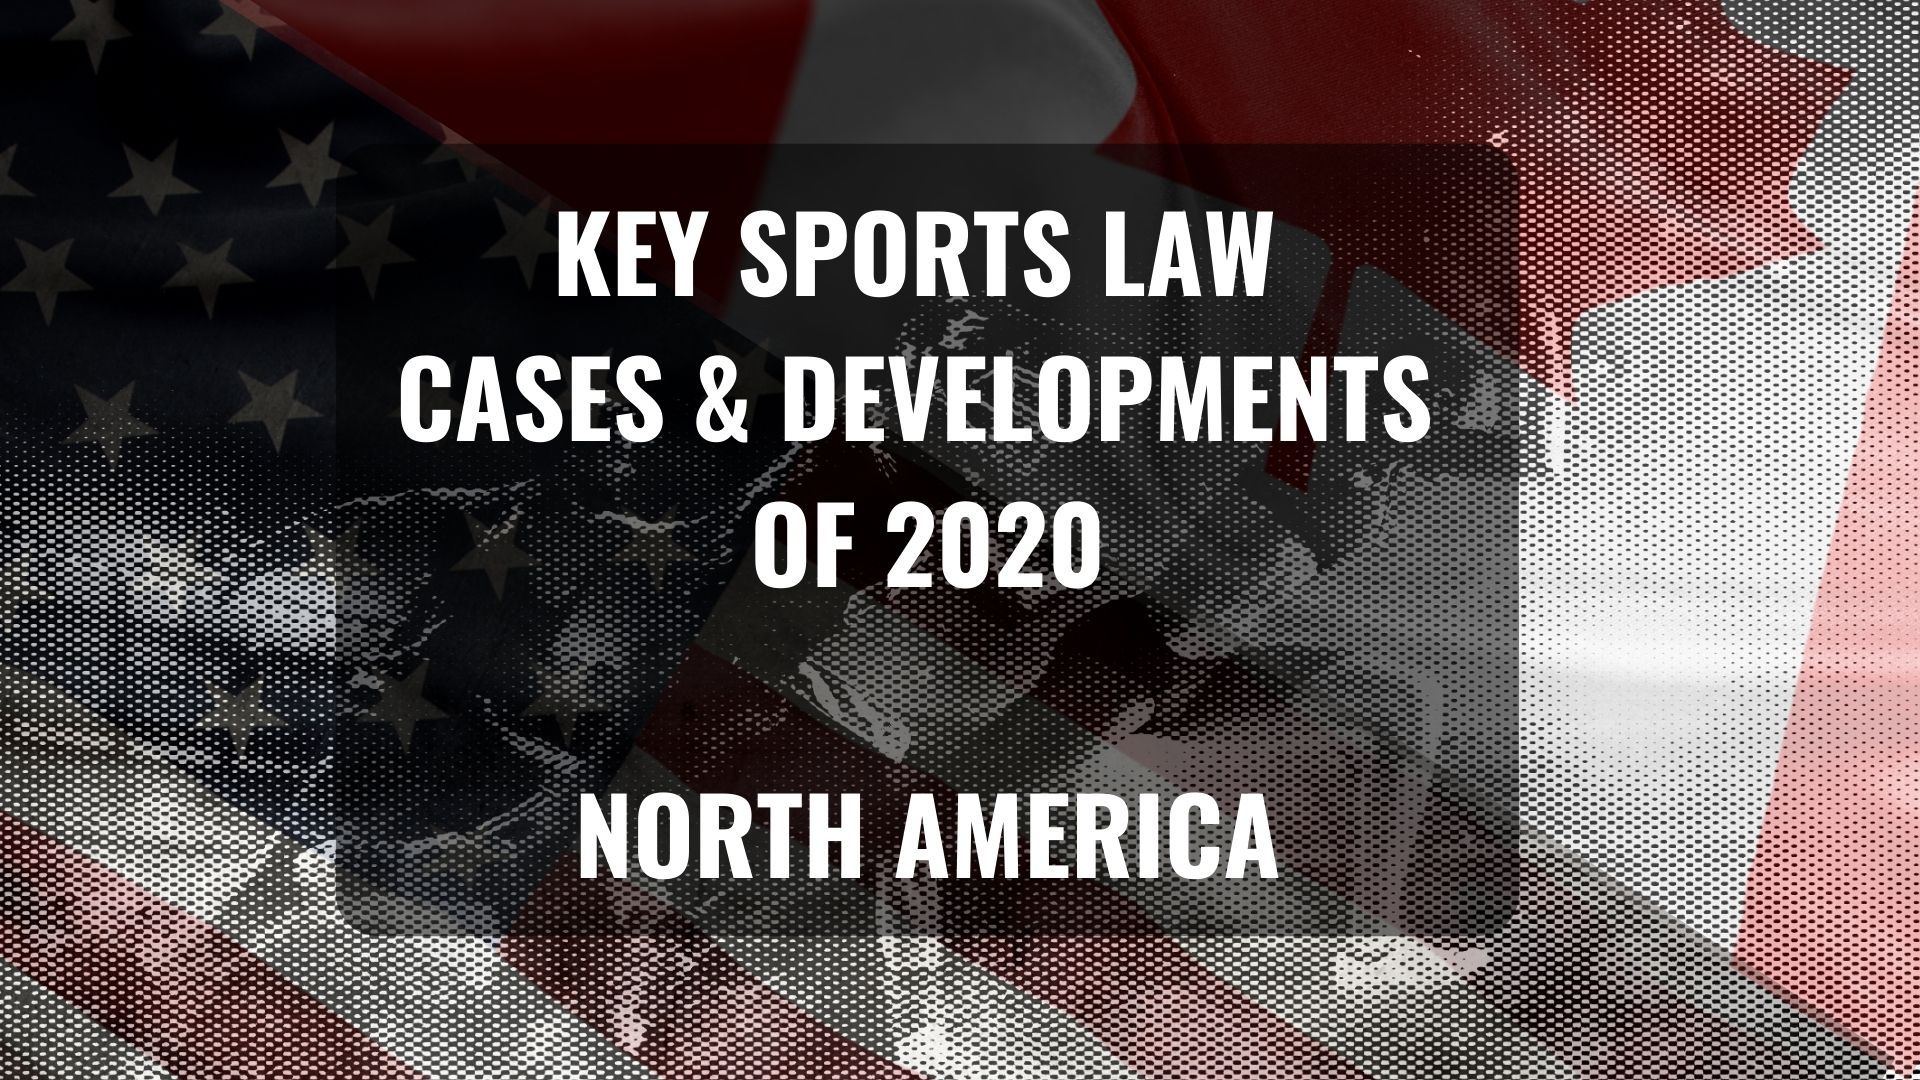 Key sports law cases and developments of 2020 – North America